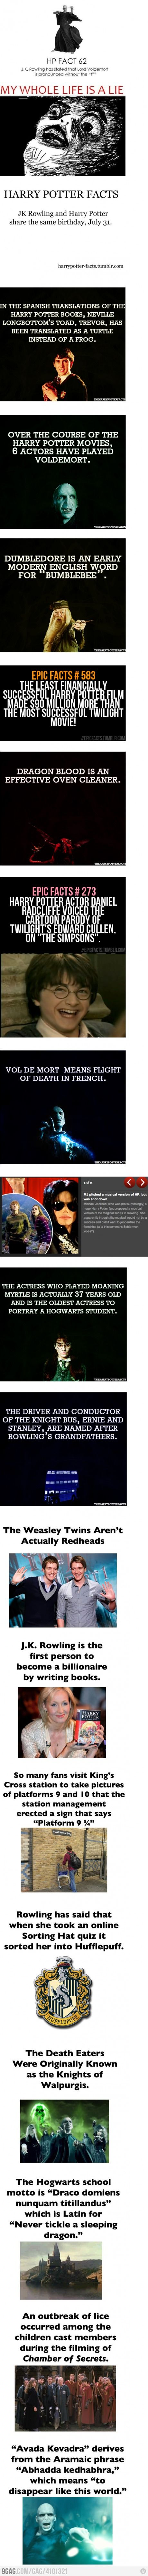 20 Facts You May Not Know About Harry Potter- Some of these are really surprising...